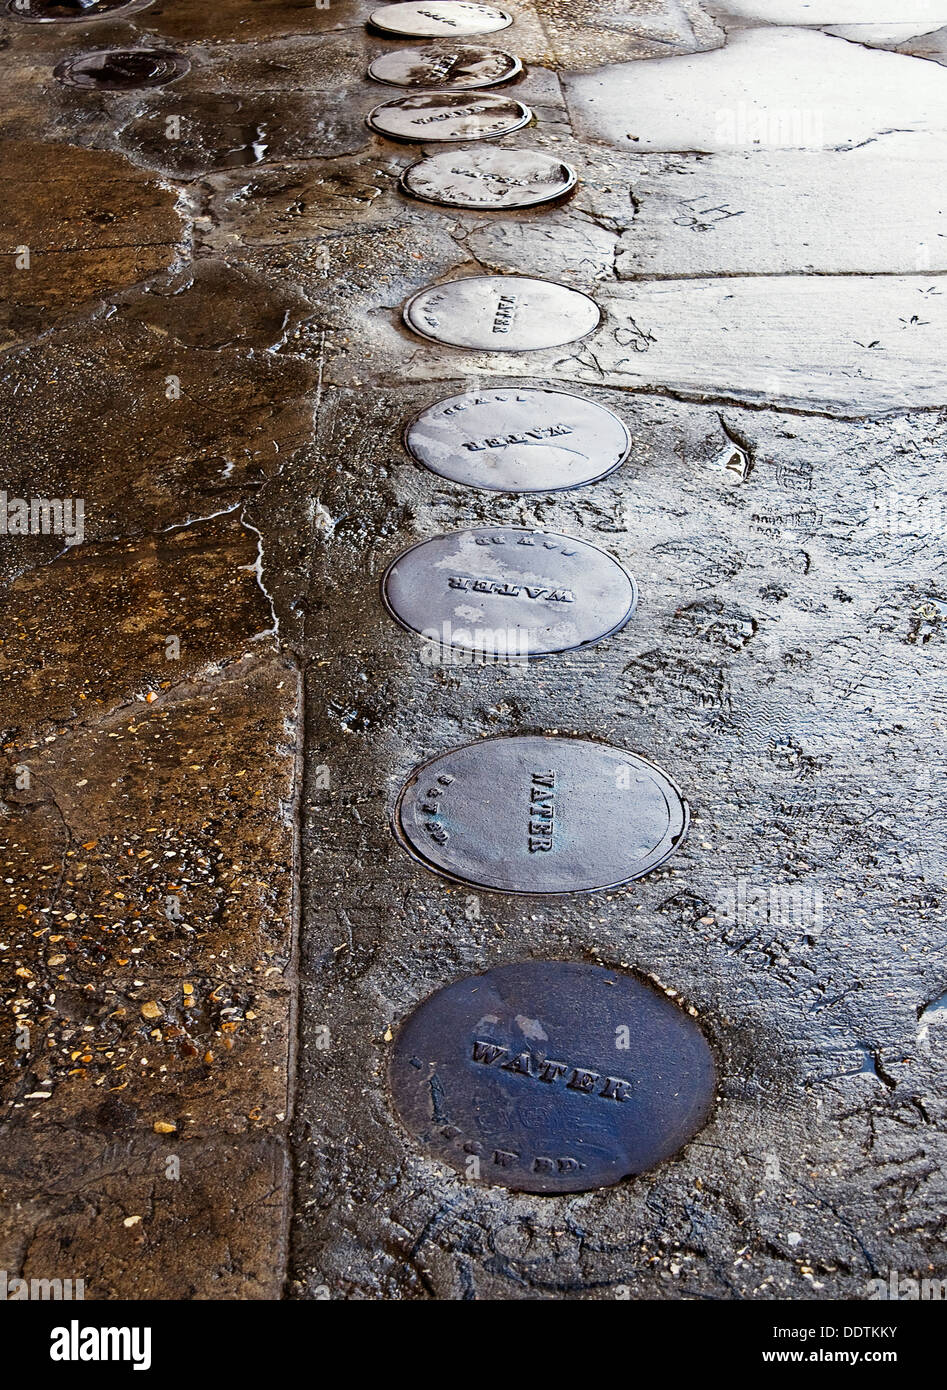 water meter manhole covers in New Orleans, Louisianna - Stock Image